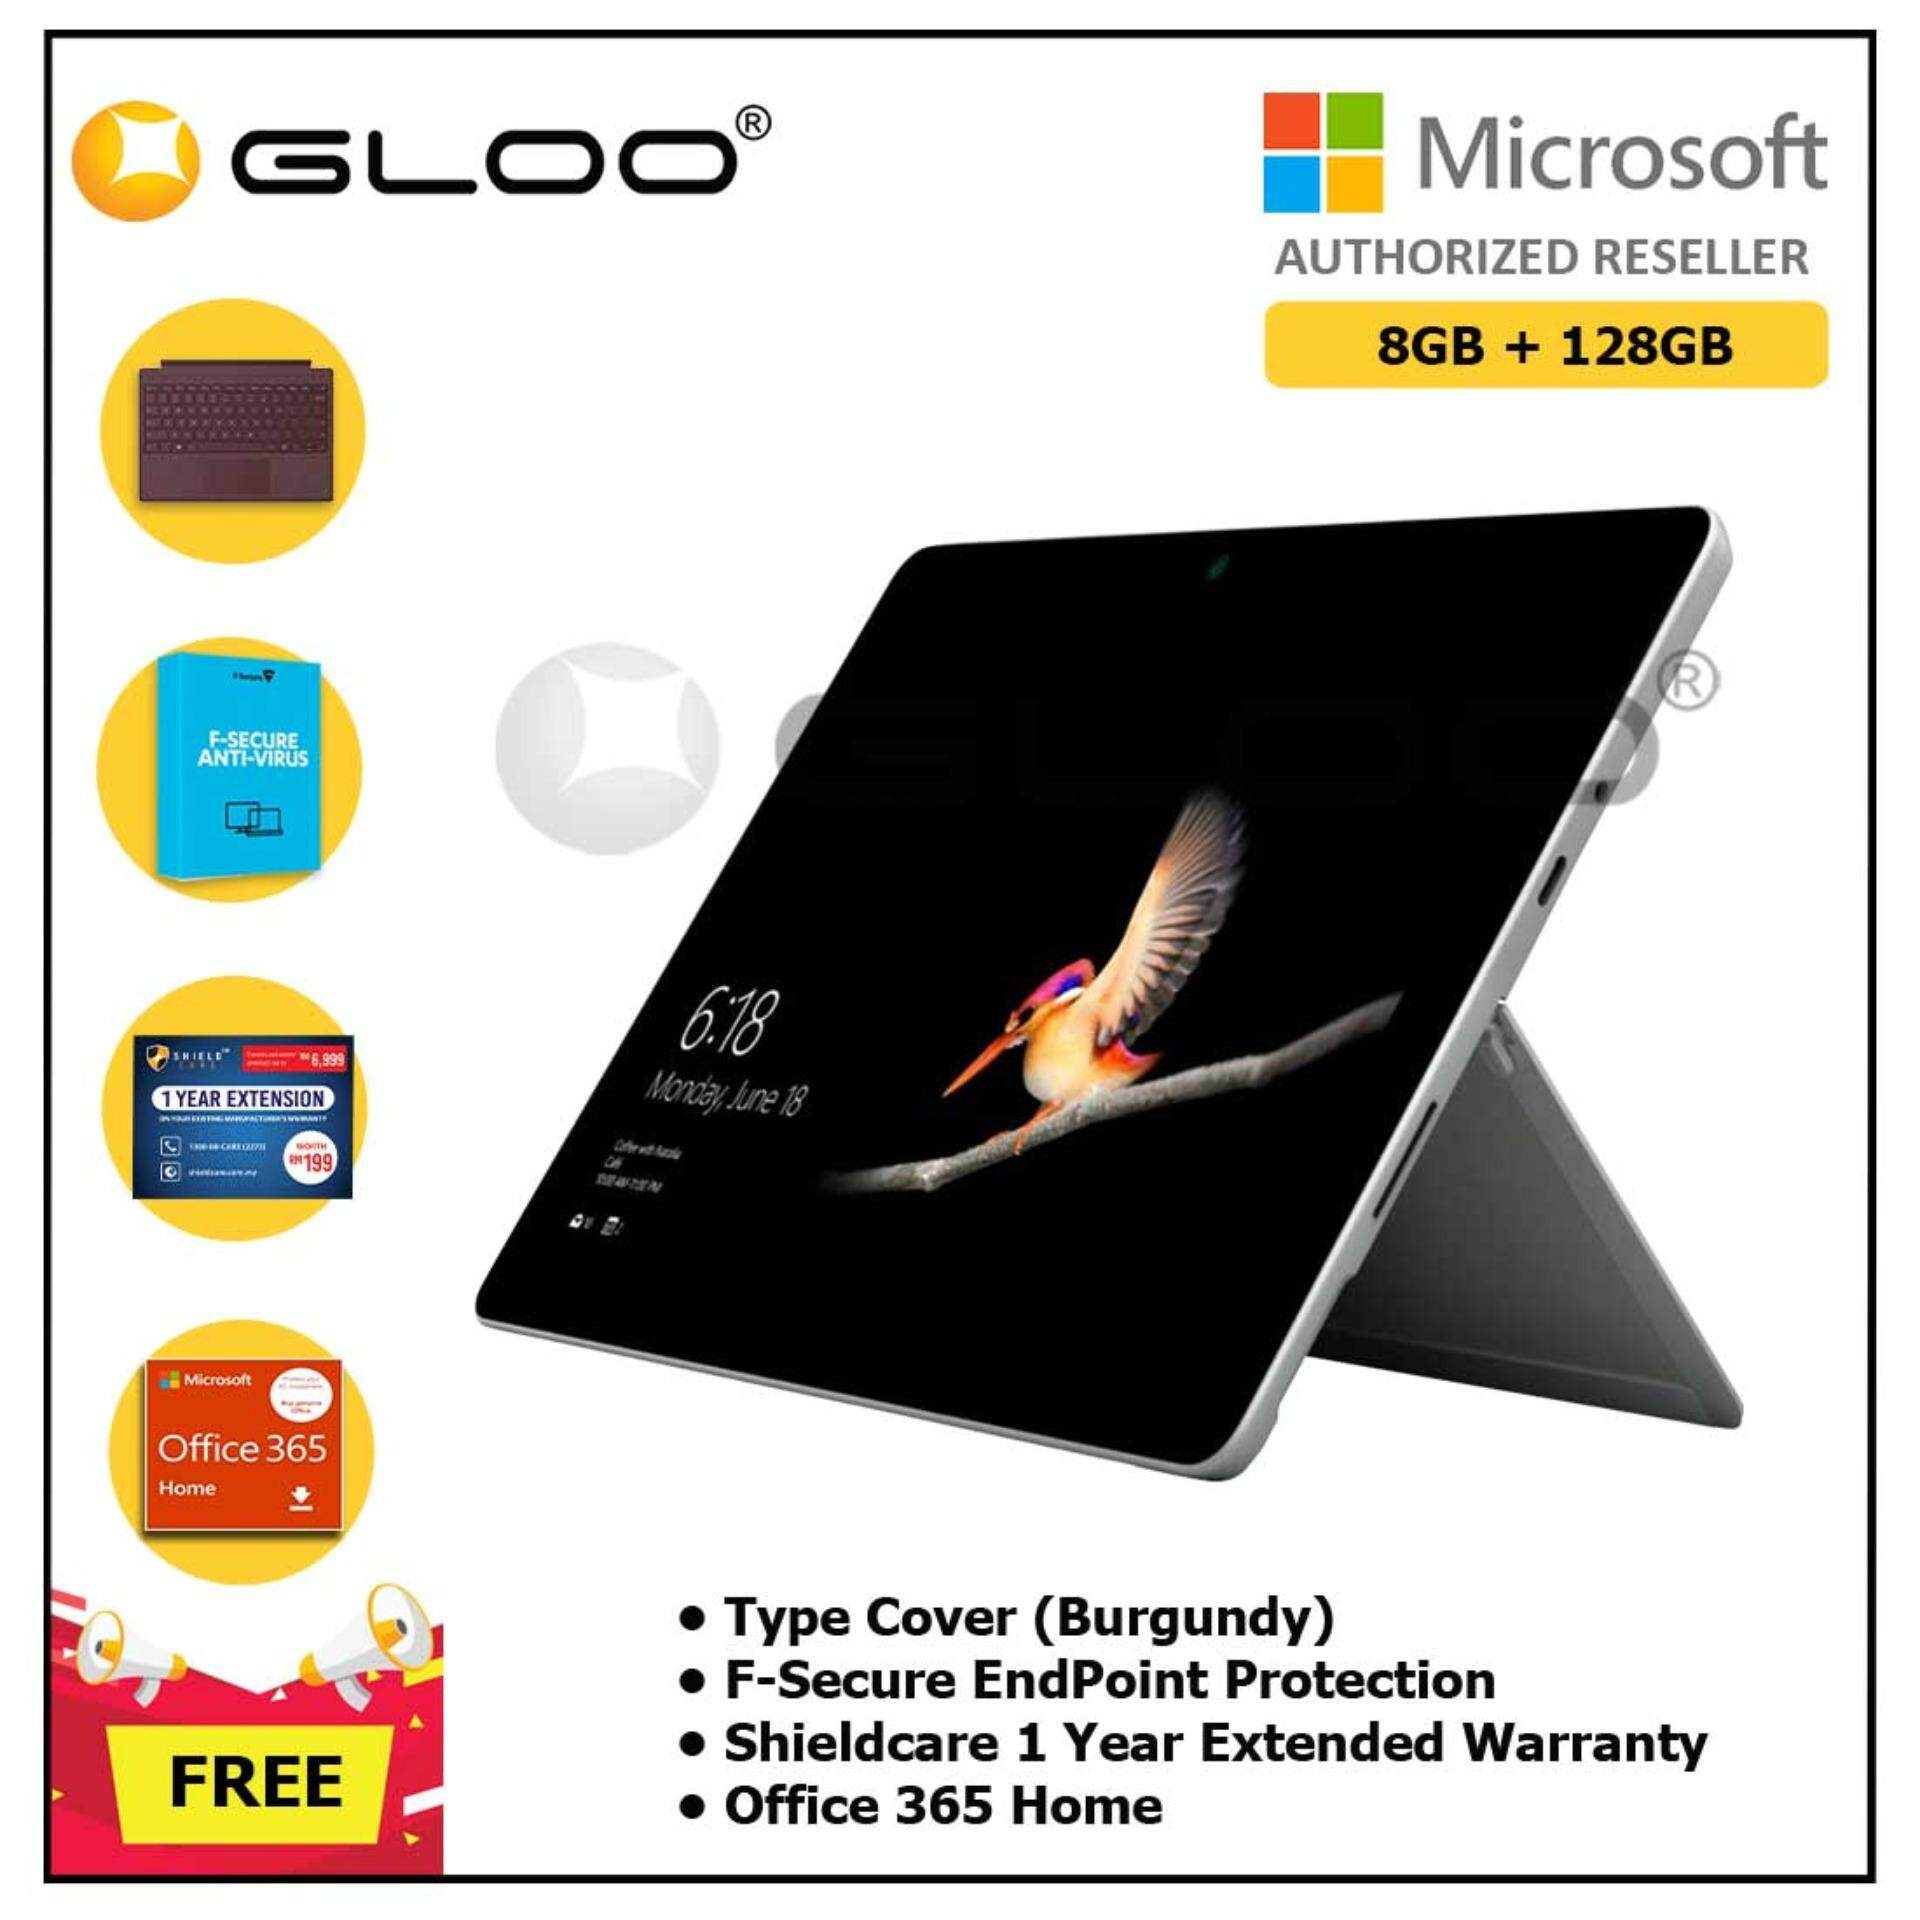 Surface Go Y/8GB 128GB + Surface Go Type Cover Burgundy + Shieldcare 1 Year Extended Warranty + F-Secure End point Protection + Office 365 Home (ESD License)